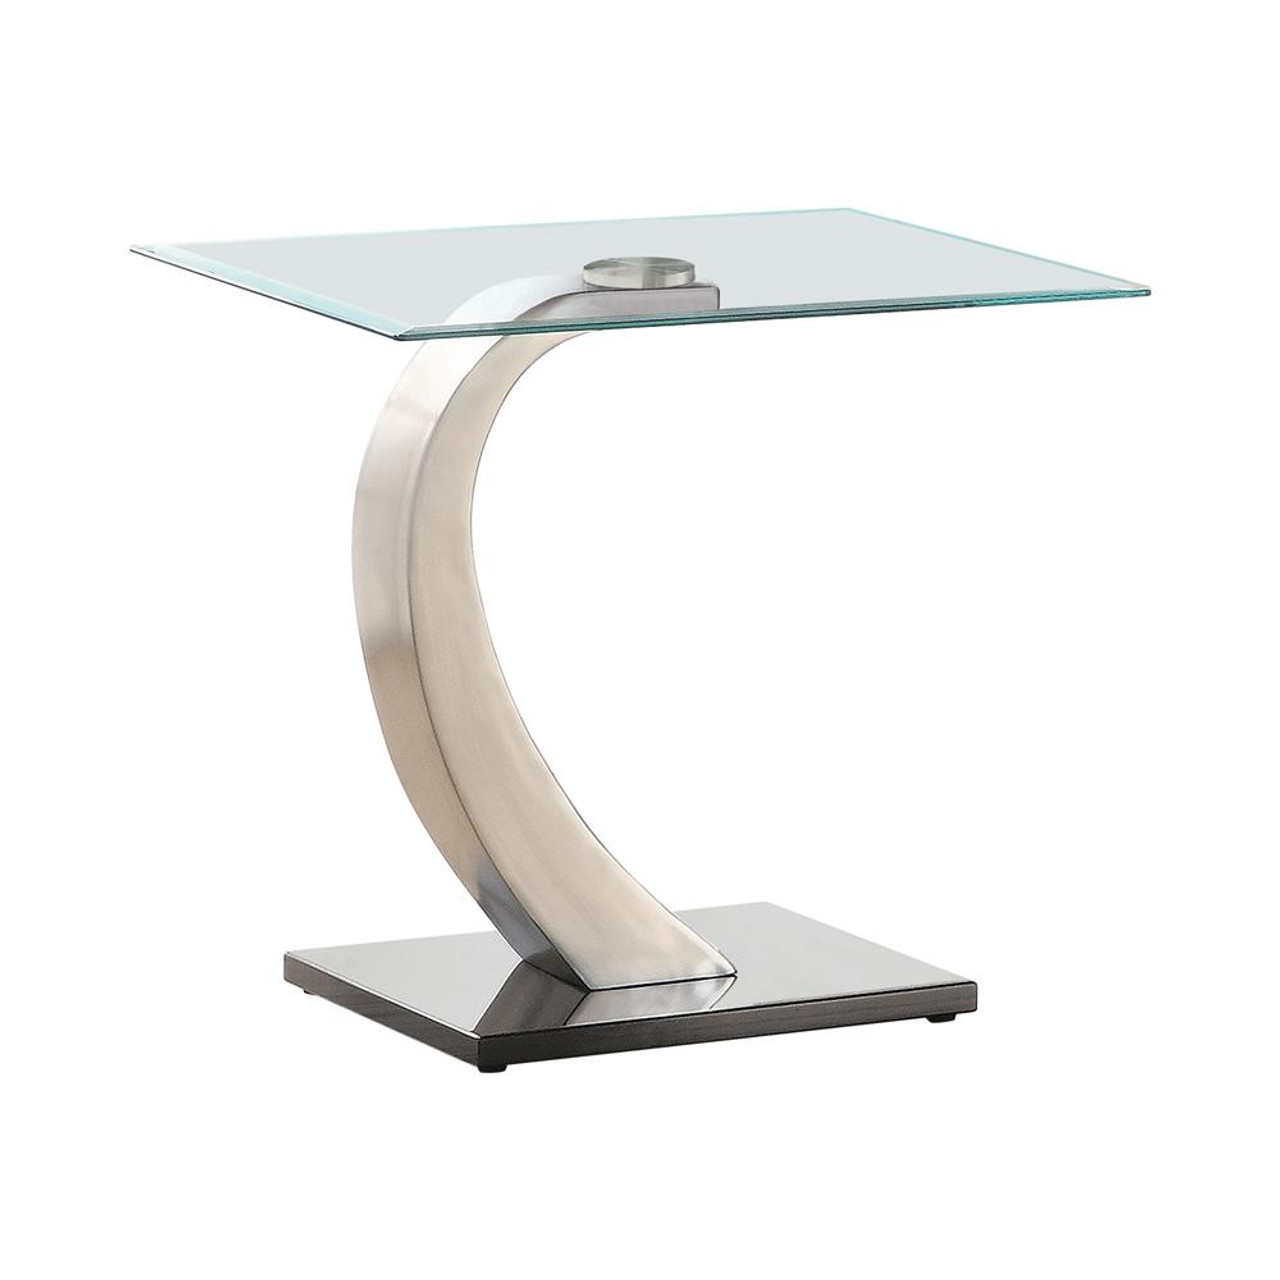 Coaster Living Room Glass Top Occasional Tables Willemse Glass Top End Table Clear And Satin 701237 On Sale At Spokane Furniture Company Serving Spokane Post Falls Coeur D Alene Wa Spokane